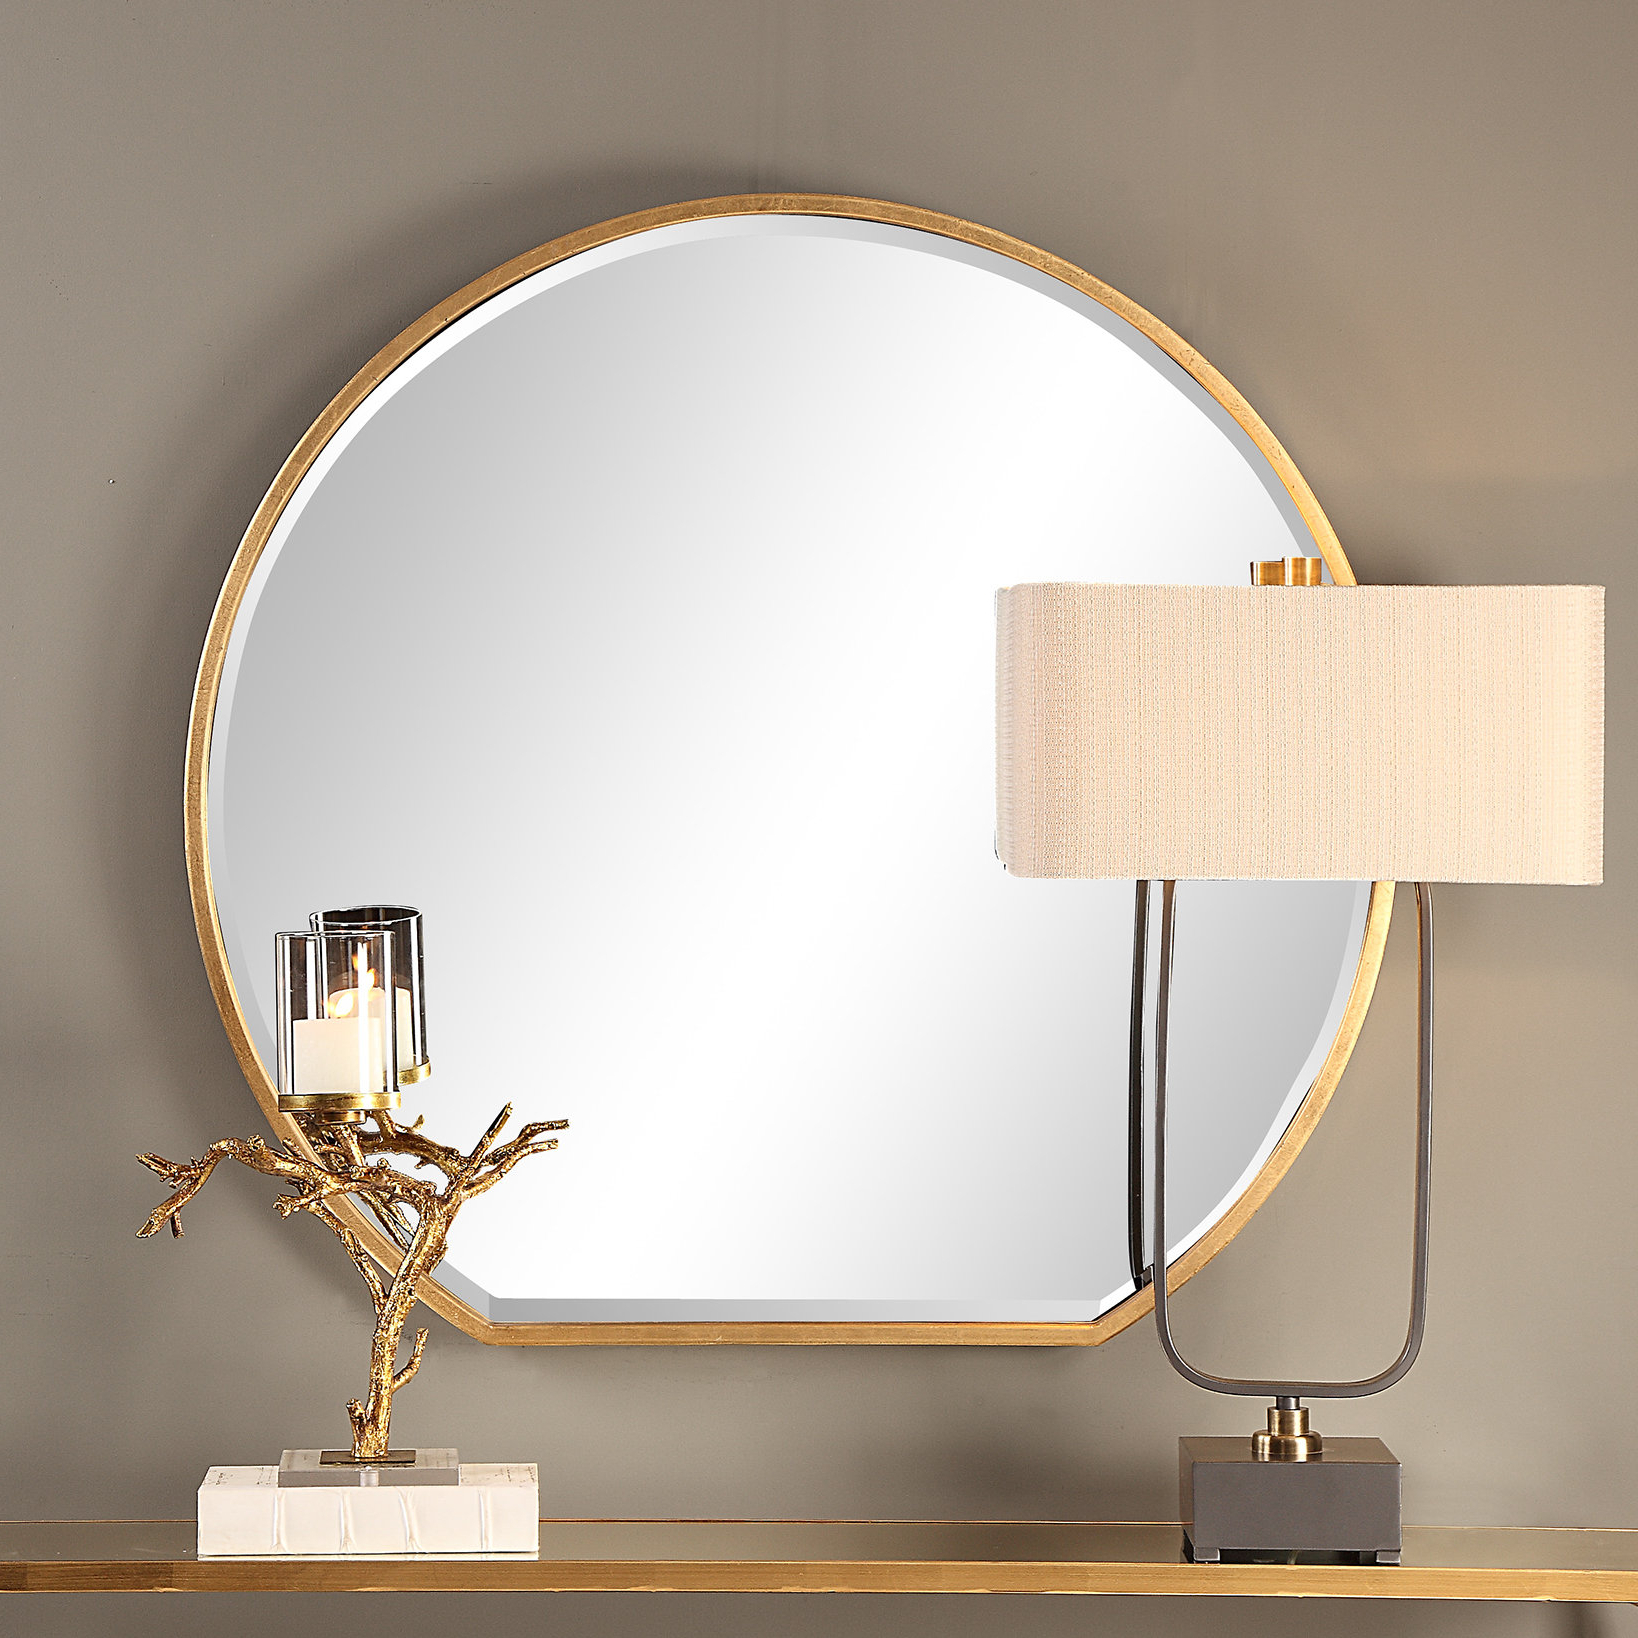 Popular Kelvin Accent Mirror Intended For Lugo Rectangle Accent Mirrors (View 18 of 20)